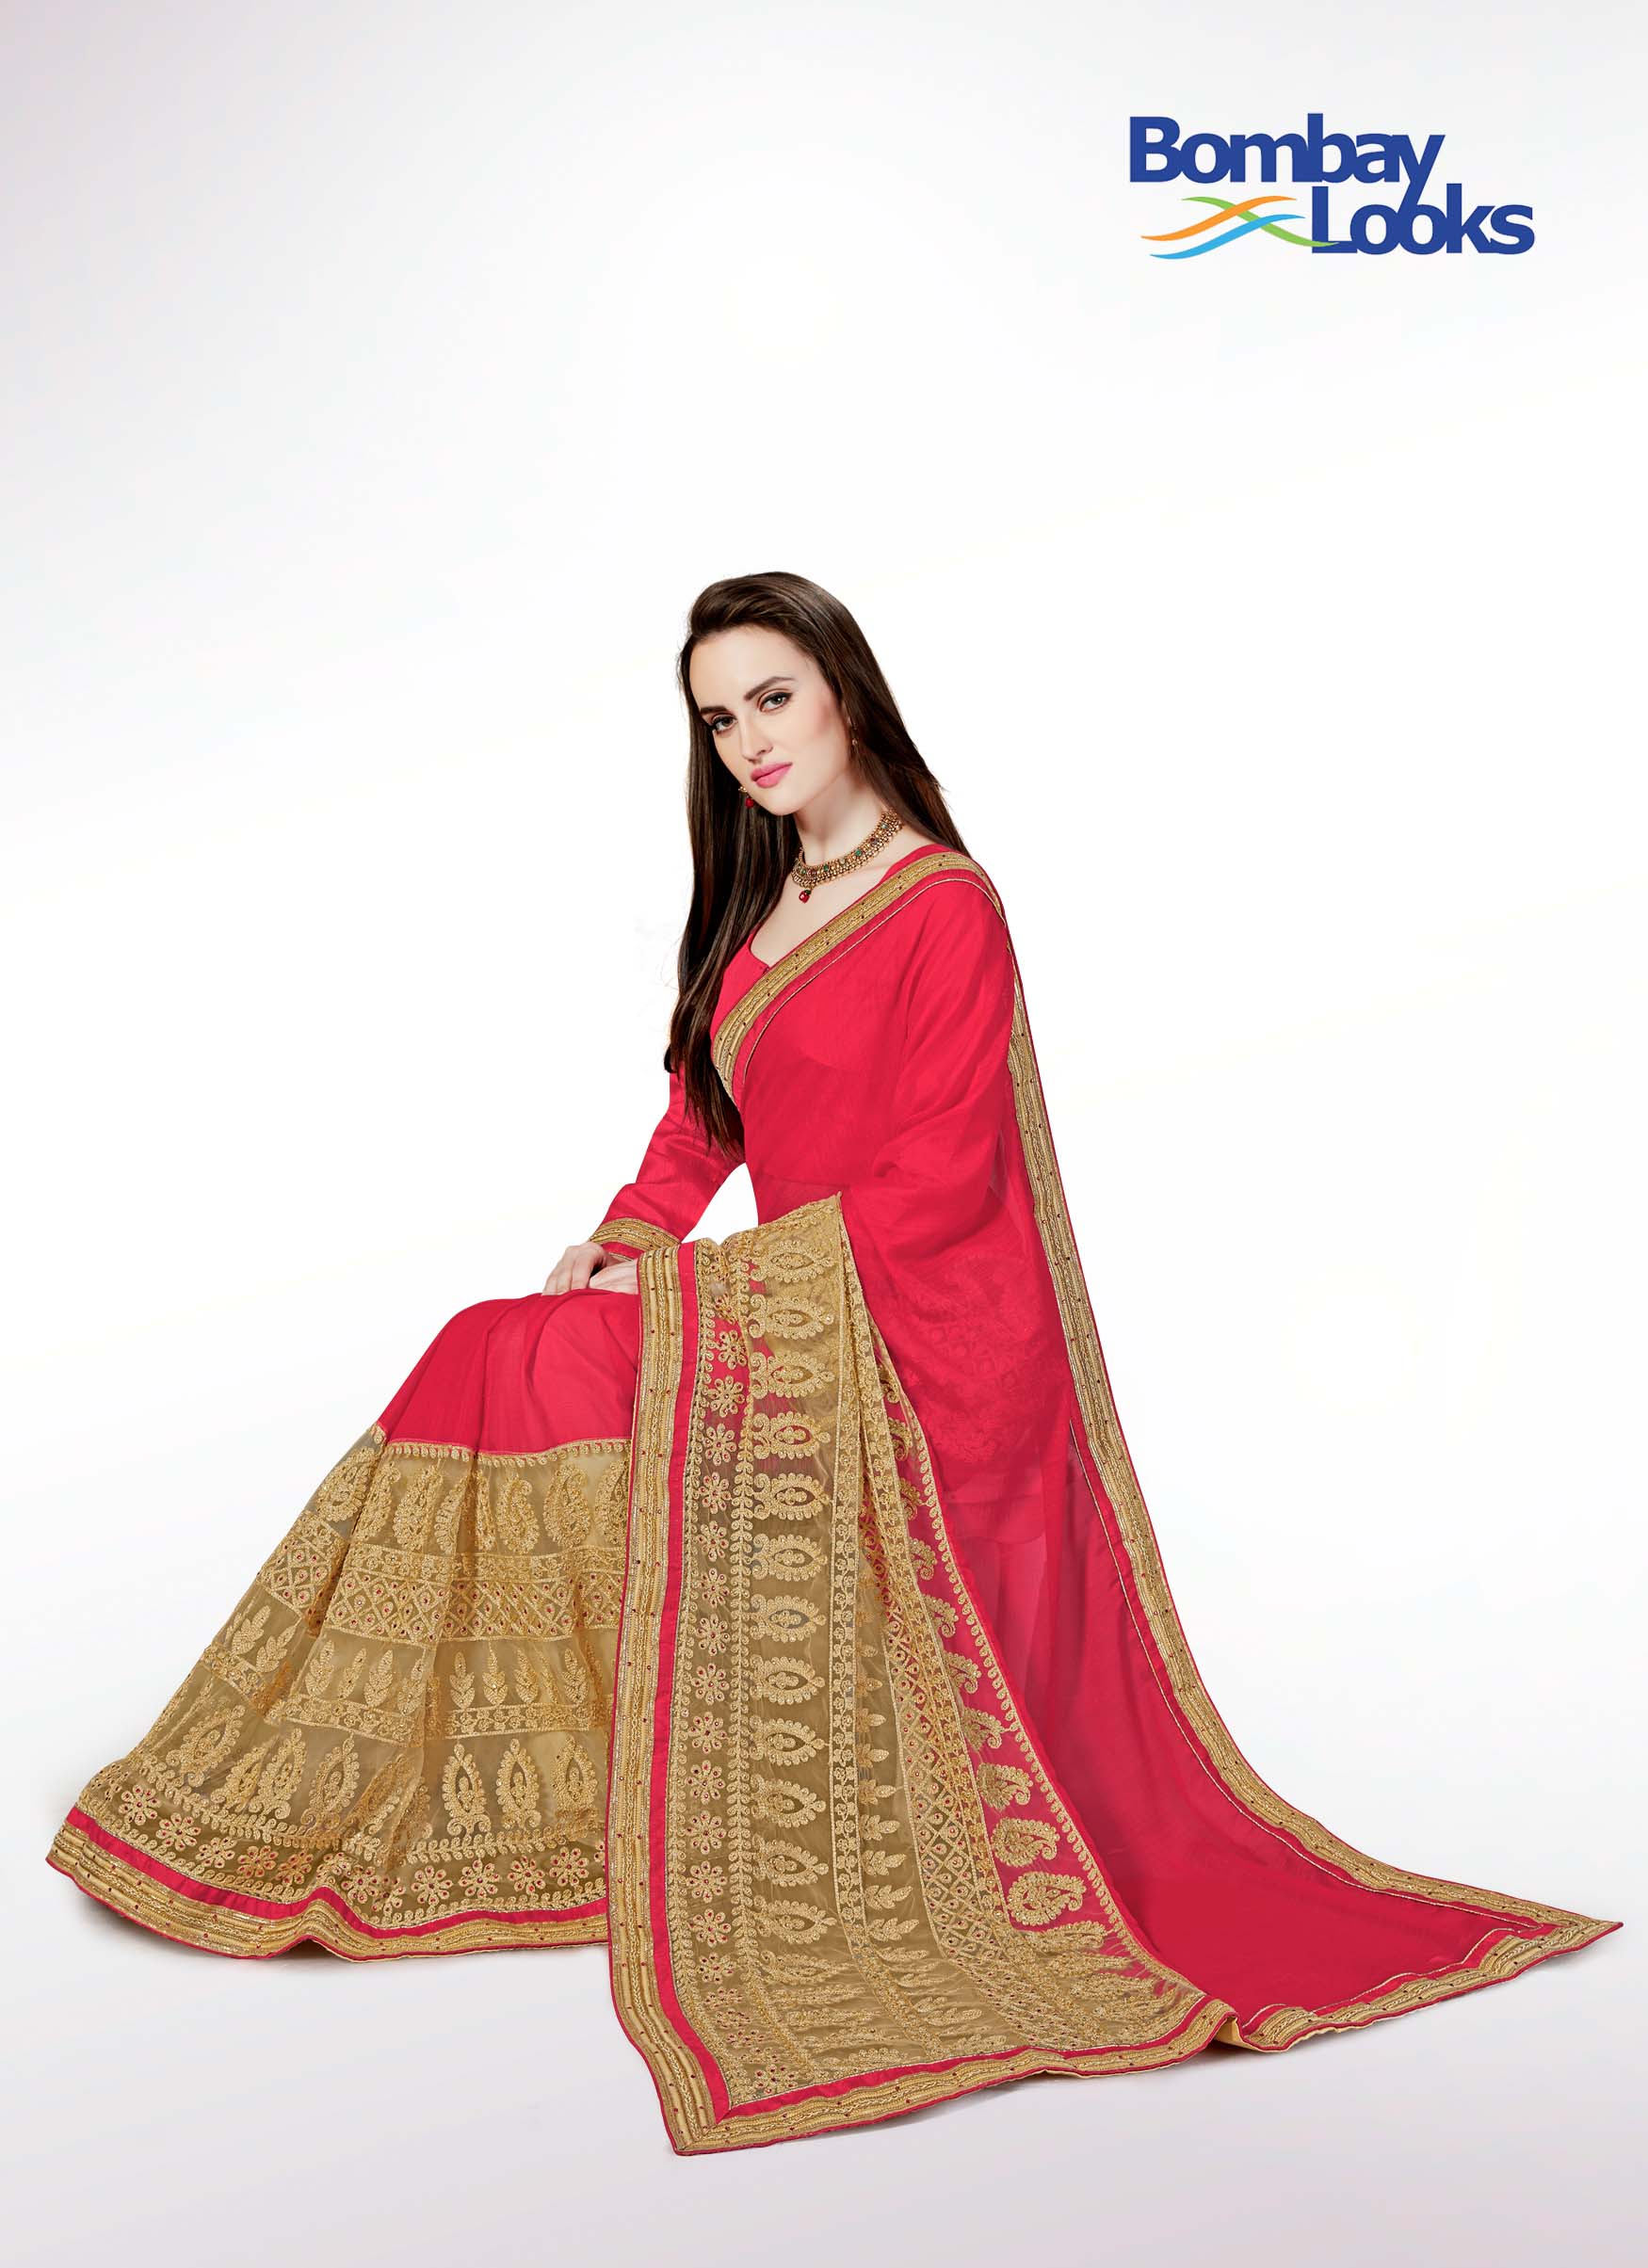 Gorgeous coral chiffon saree with gold embroidered skirt